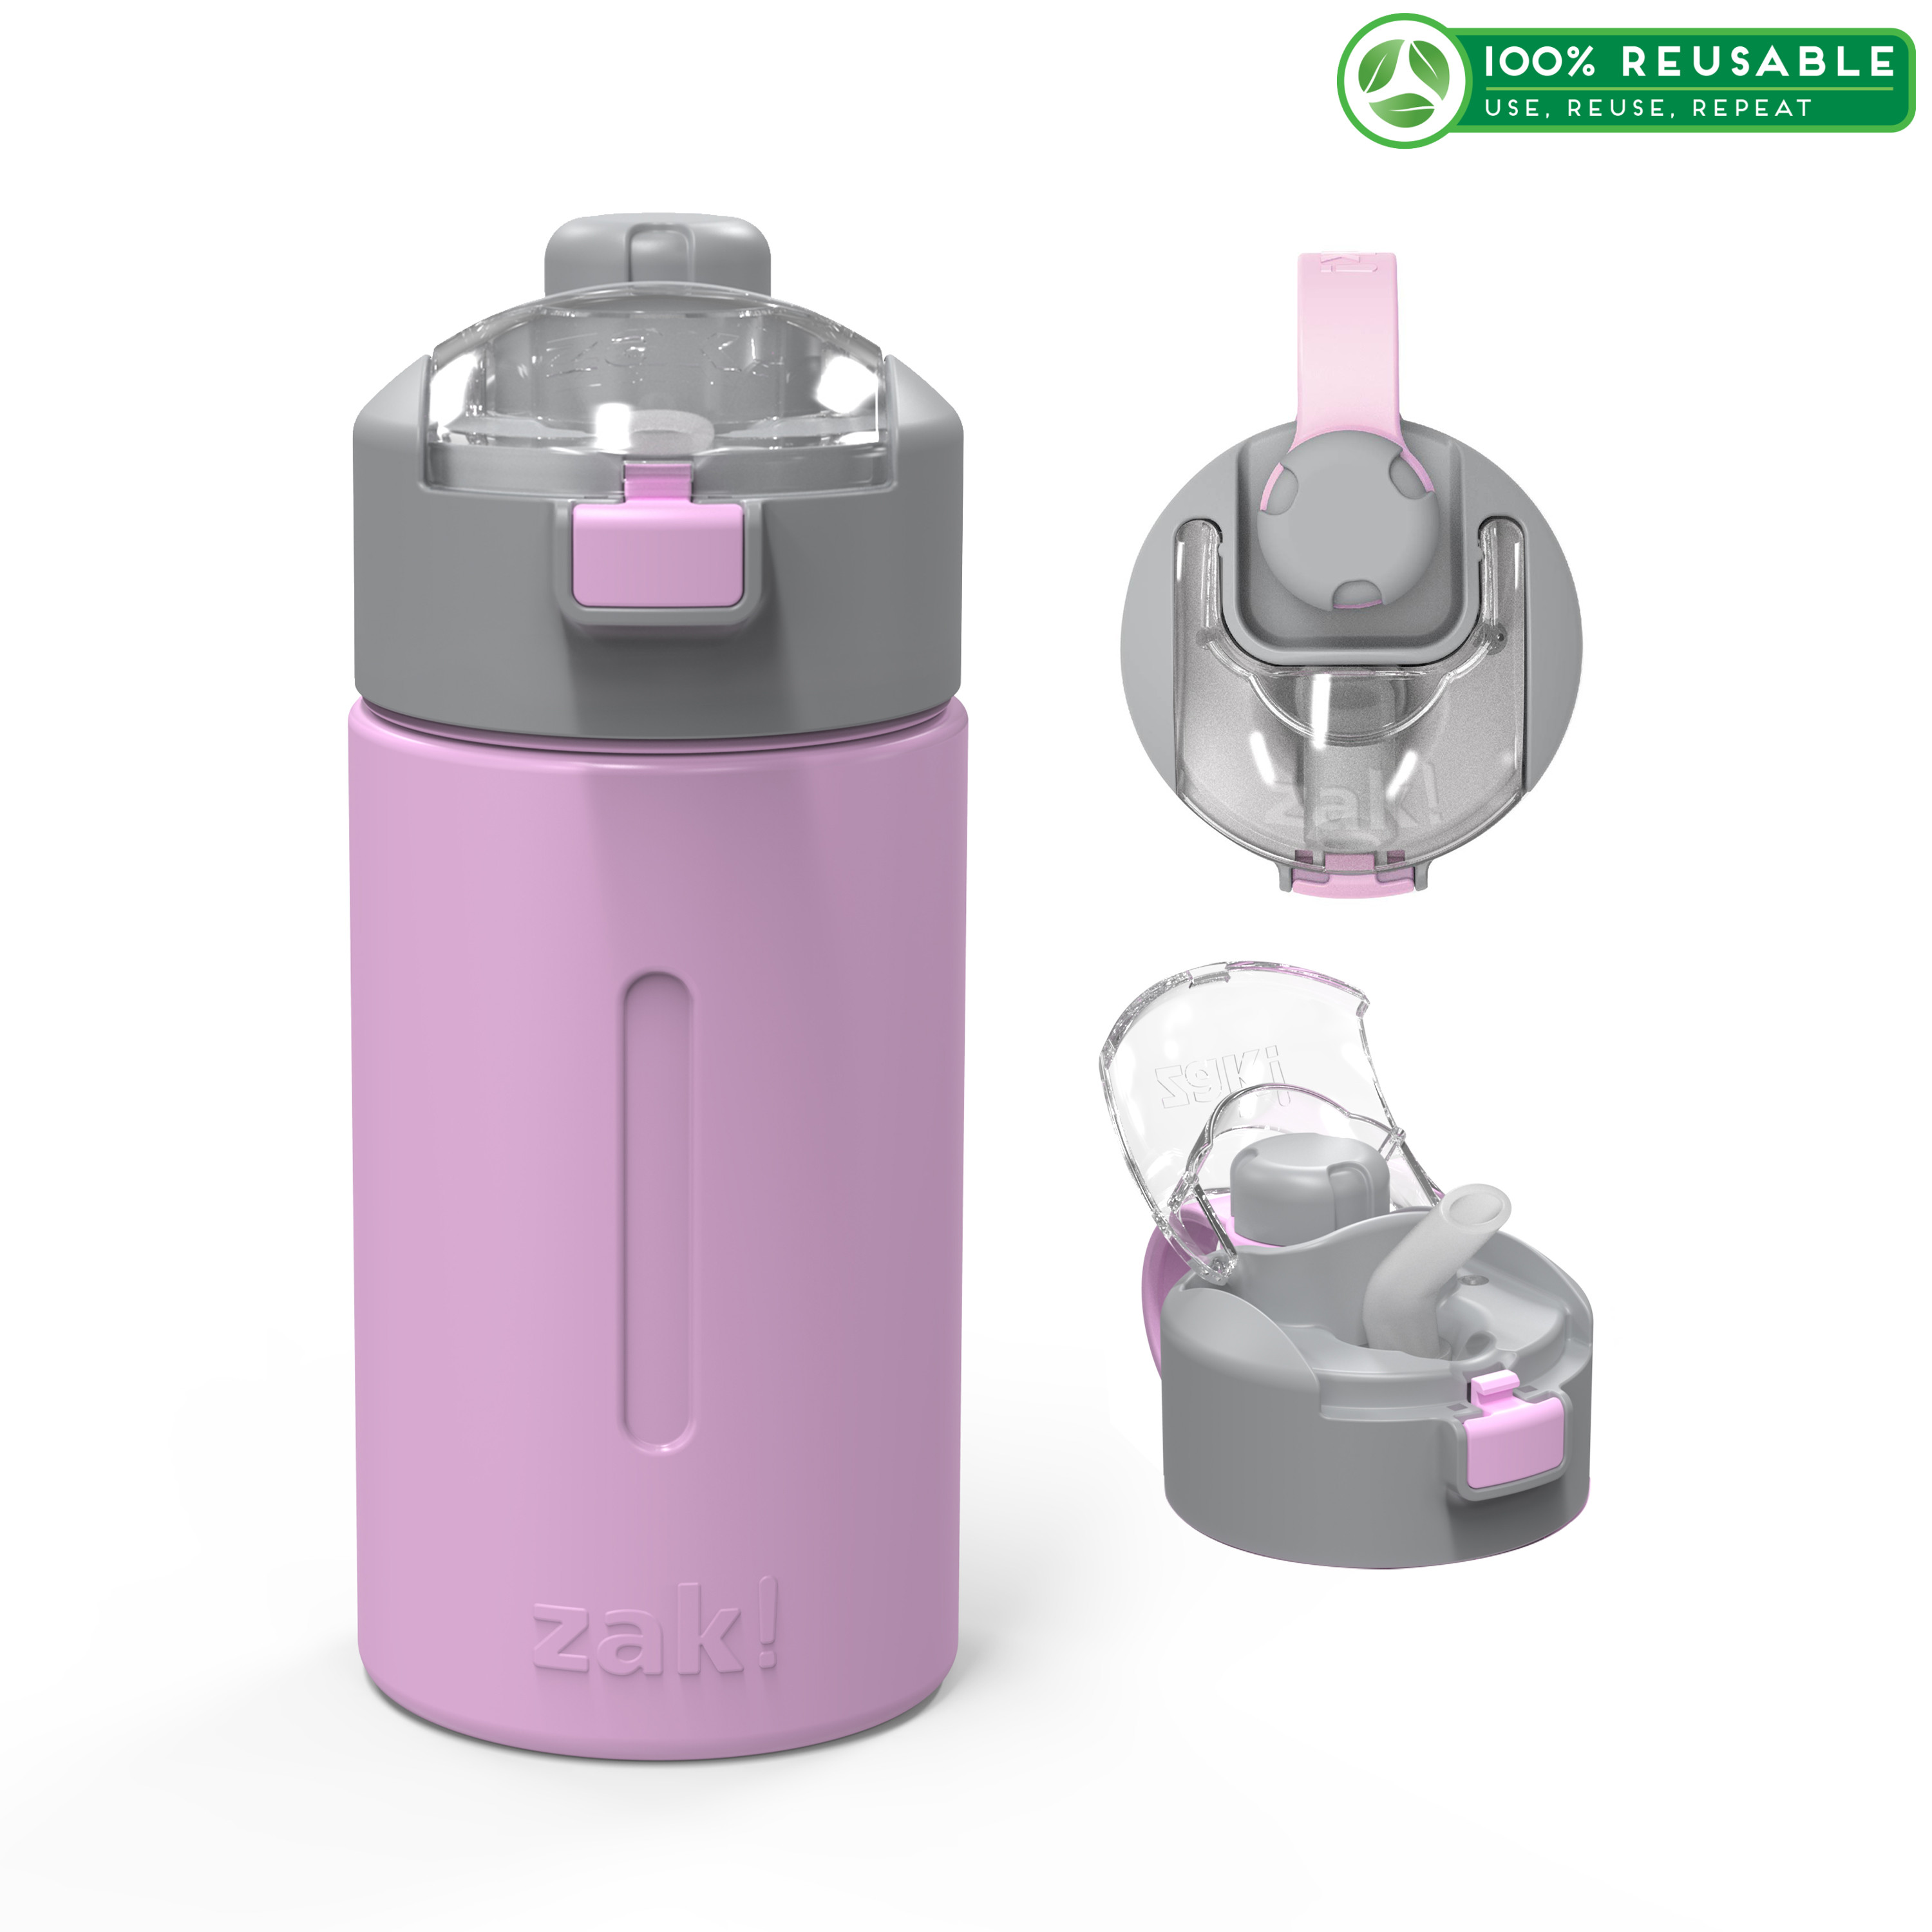 Genesis 12 ounce Vacuum Insulated Stainless Steel Tumbler, Lilac slideshow image 1